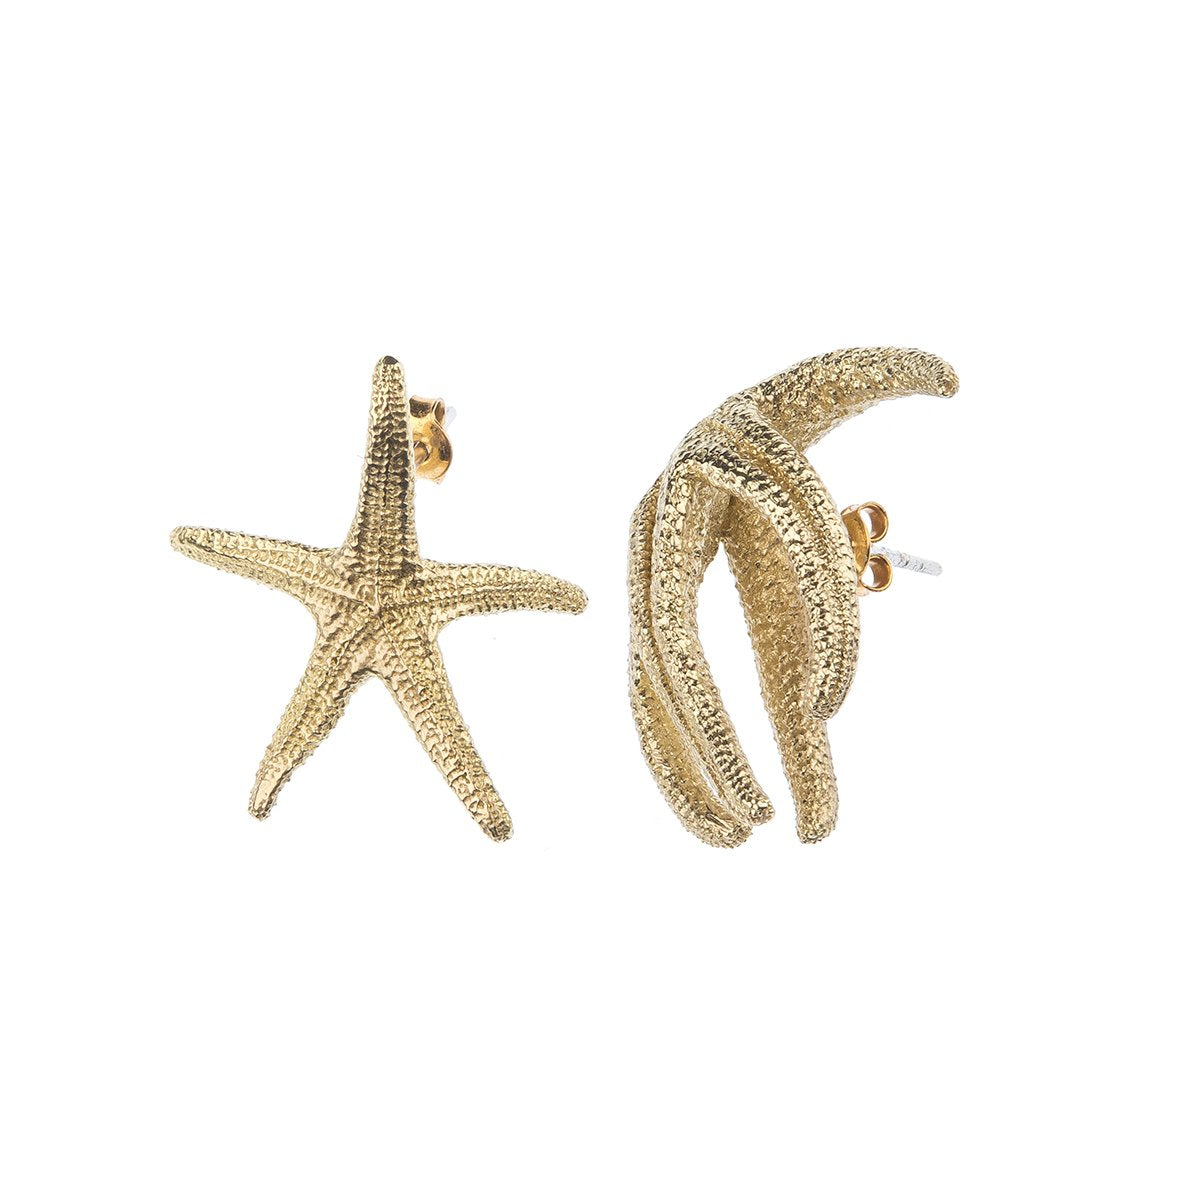 Earrings from Maris collection - MK24-1